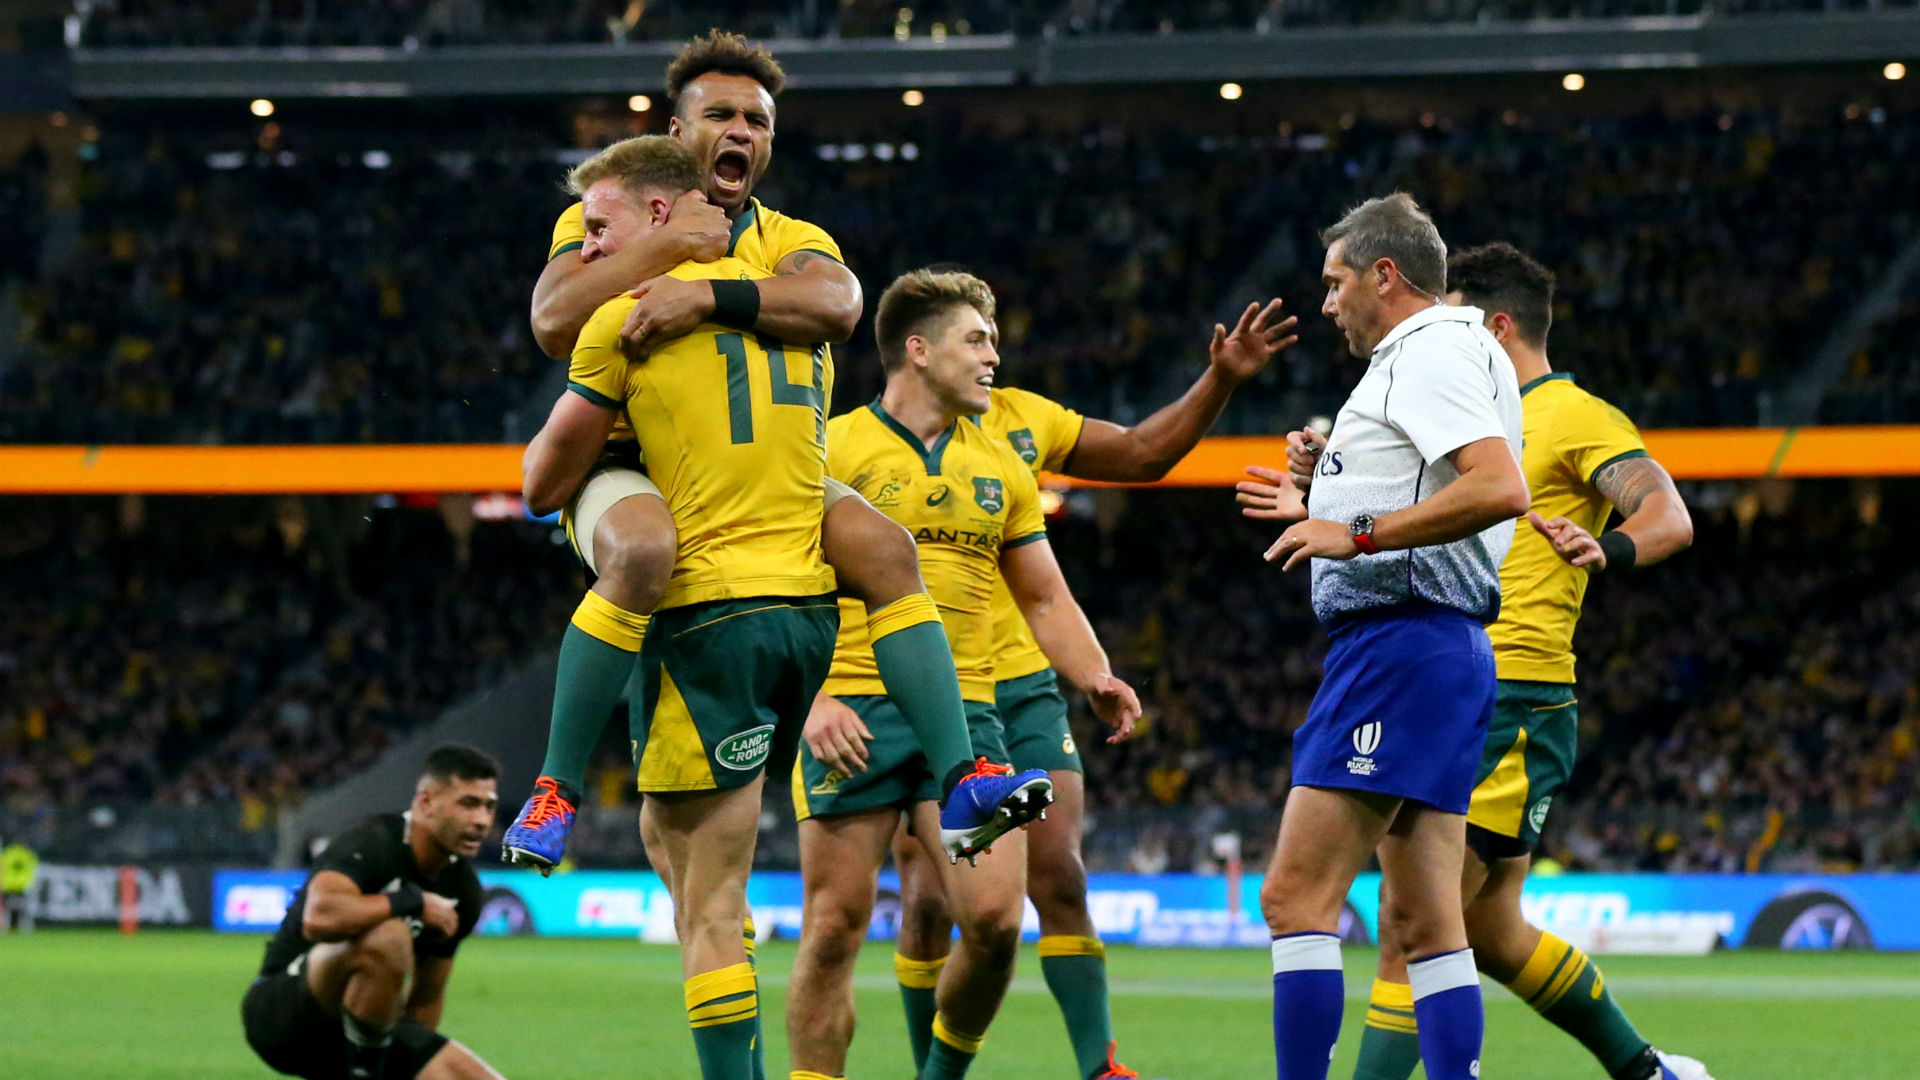 The Breakdown: A statistical look at Bledisloe Cup II